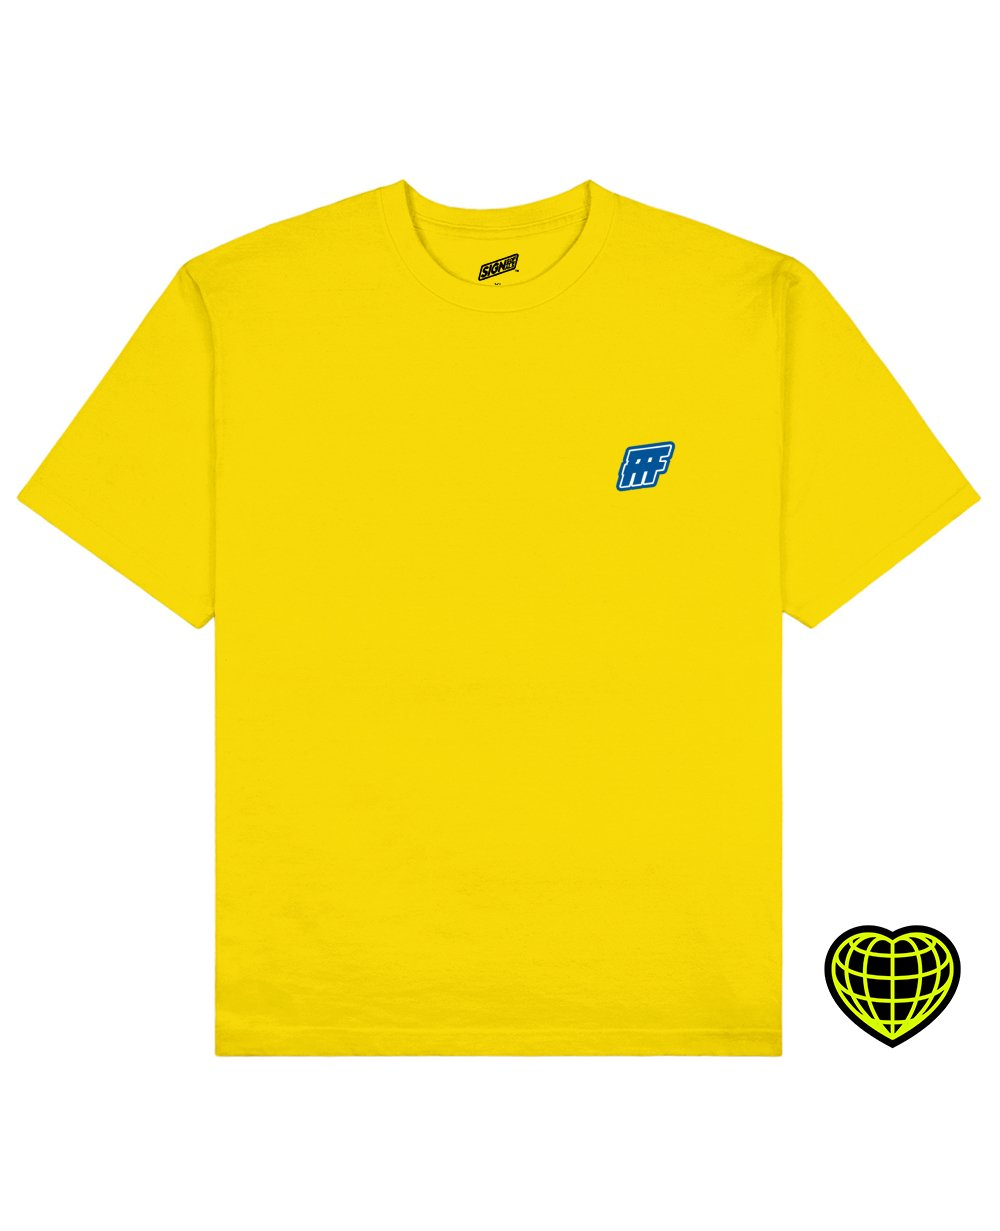 FFF Print T-shirt in Yellow - T-Shirts - Signs of Signals - BRANMA